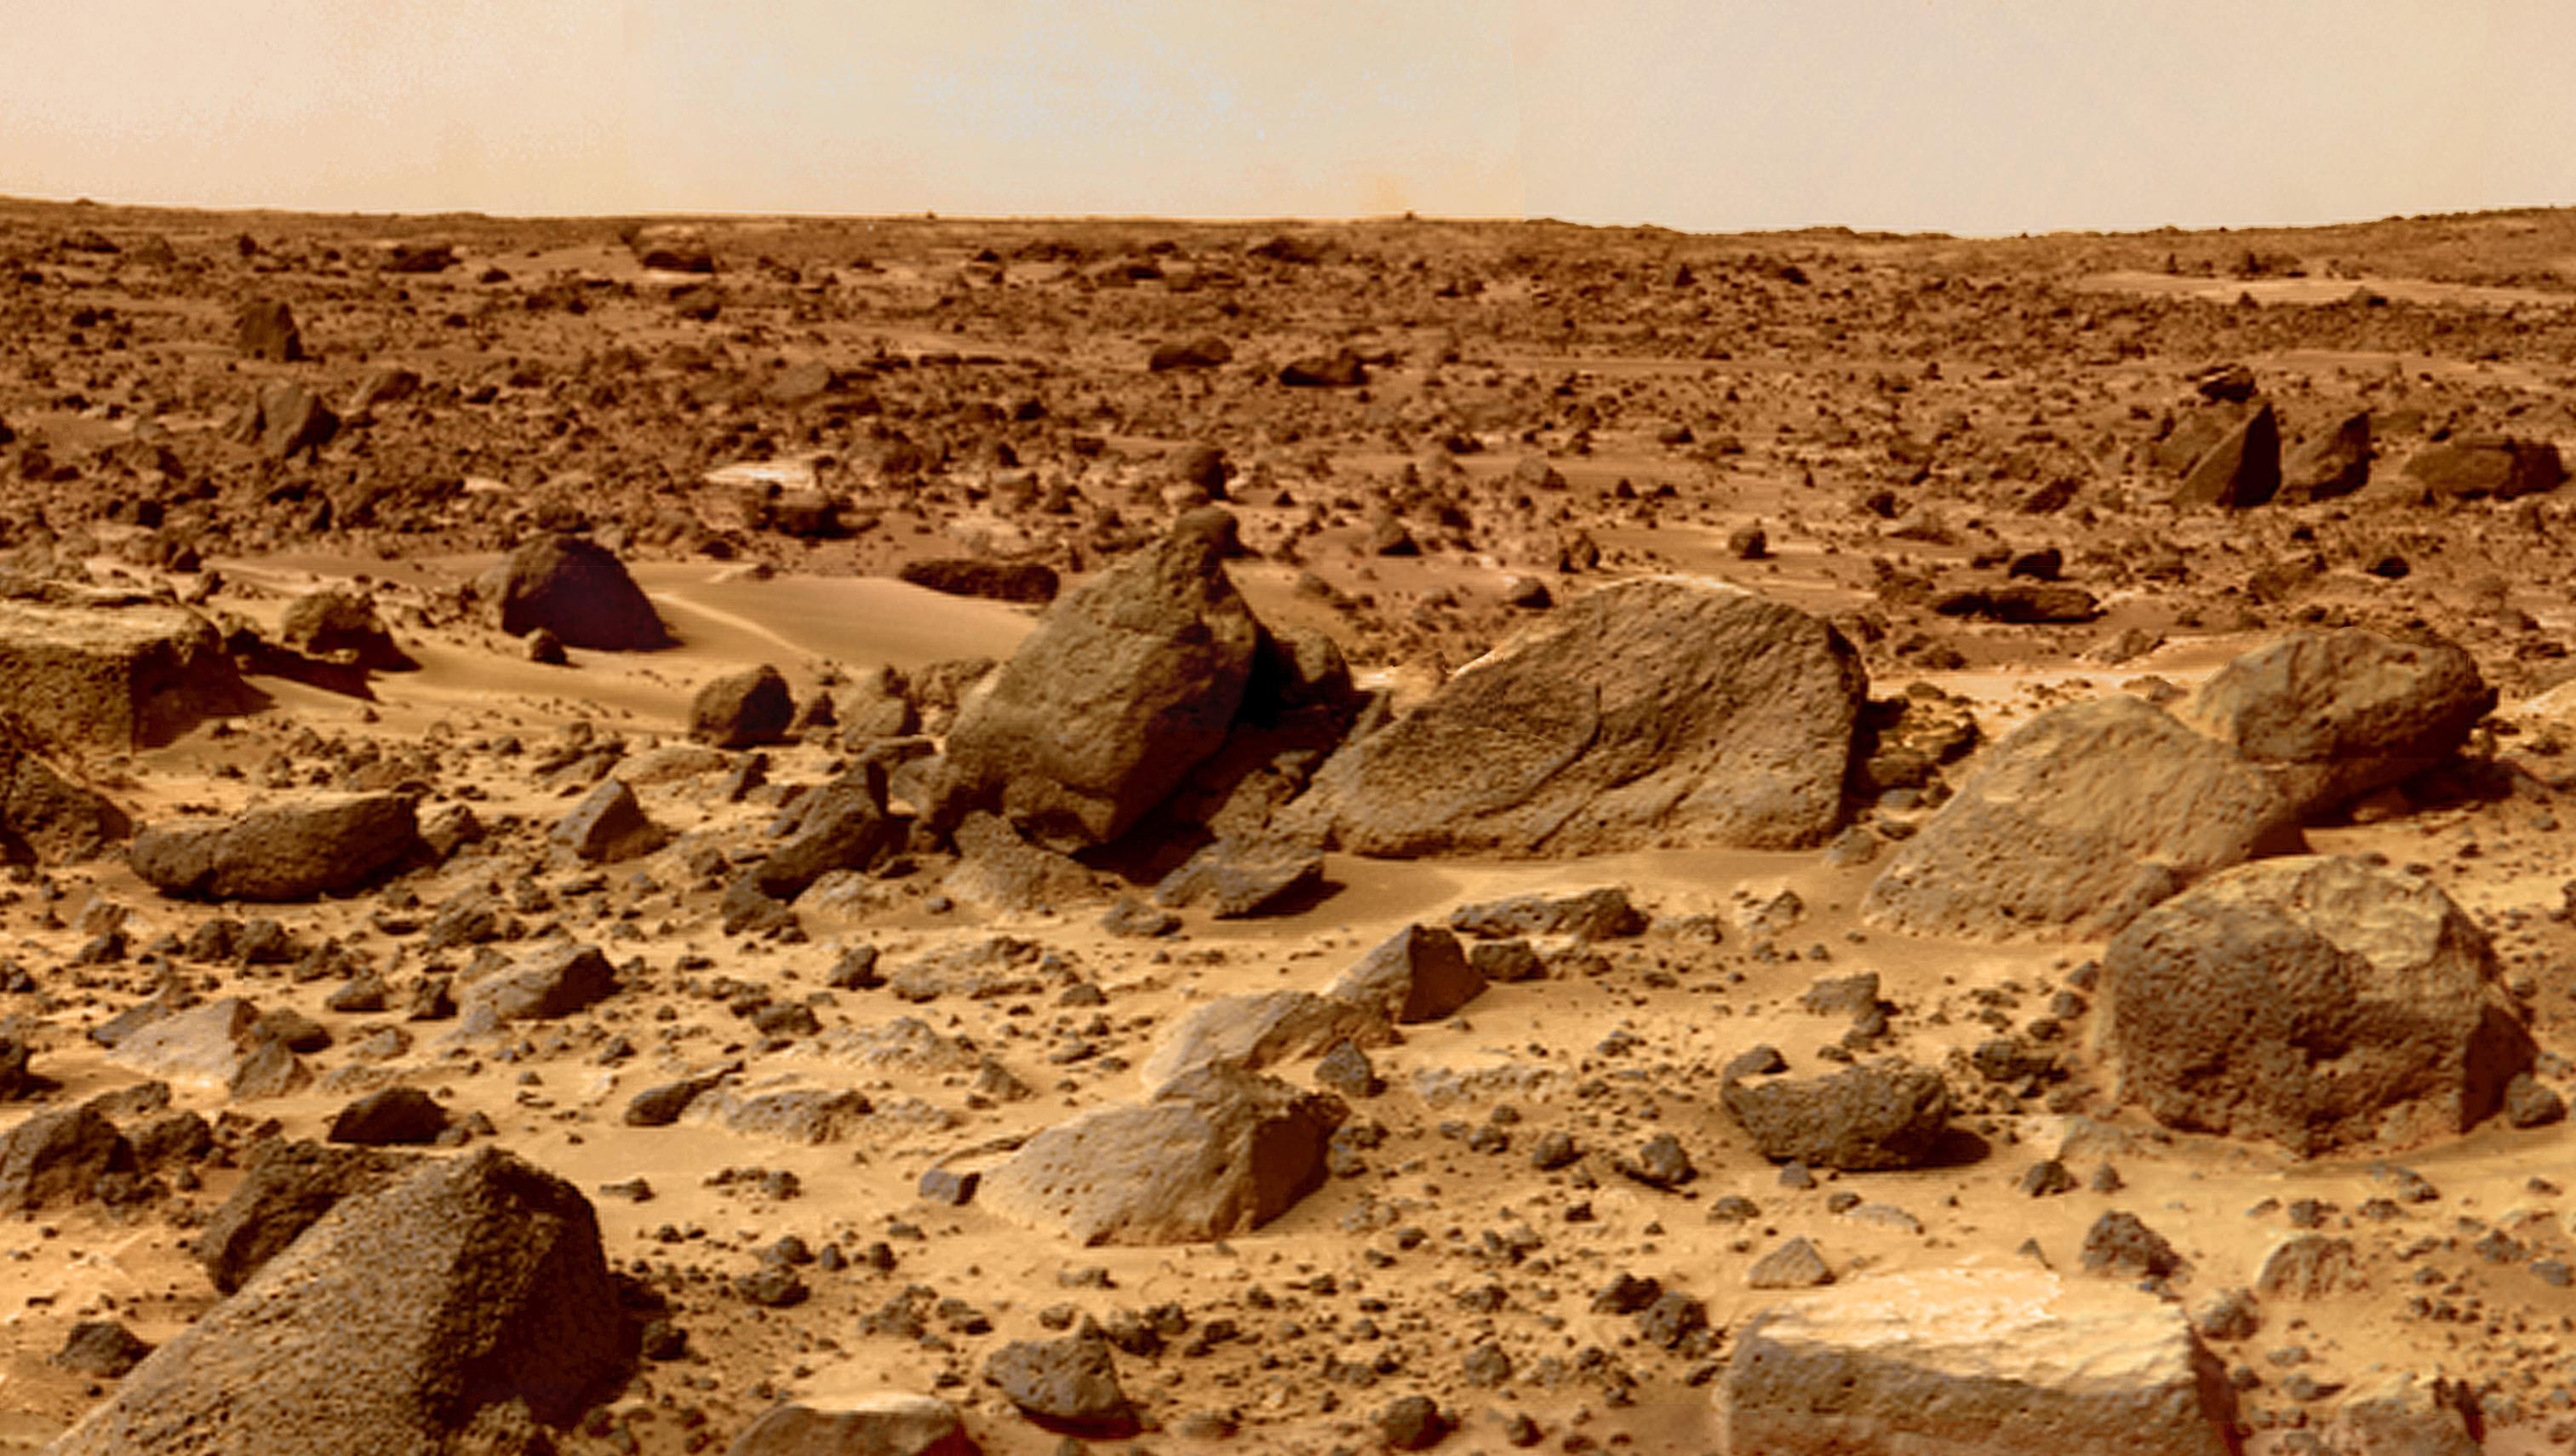 surface of mars today - photo #46